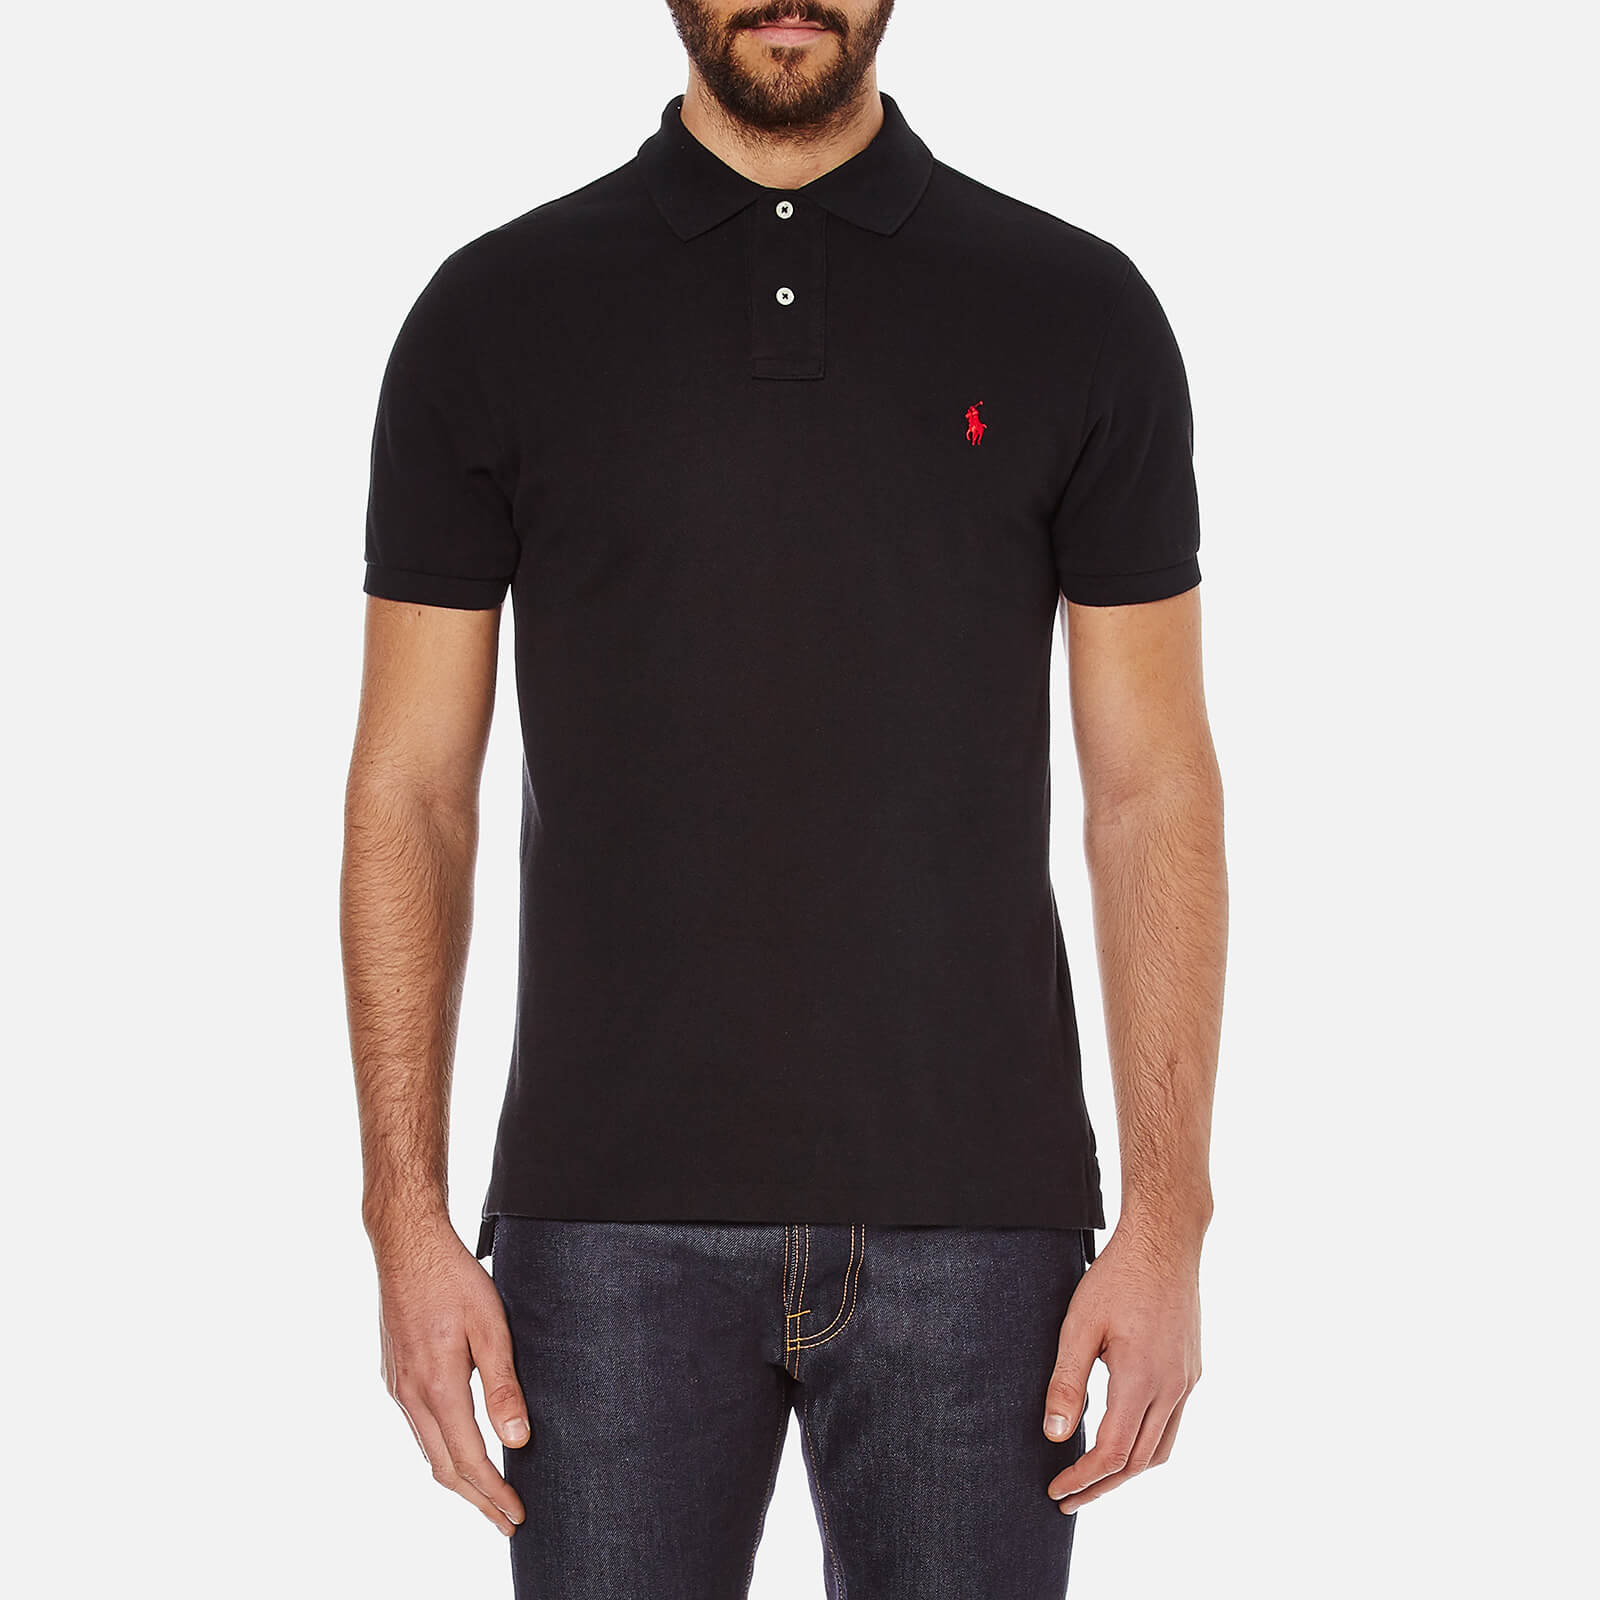 abdc3c3478146 Polo Ralph Lauren Men s Slim Fit Short Sleeved Polo Shirt - Polo Black - Free  UK Delivery over £50